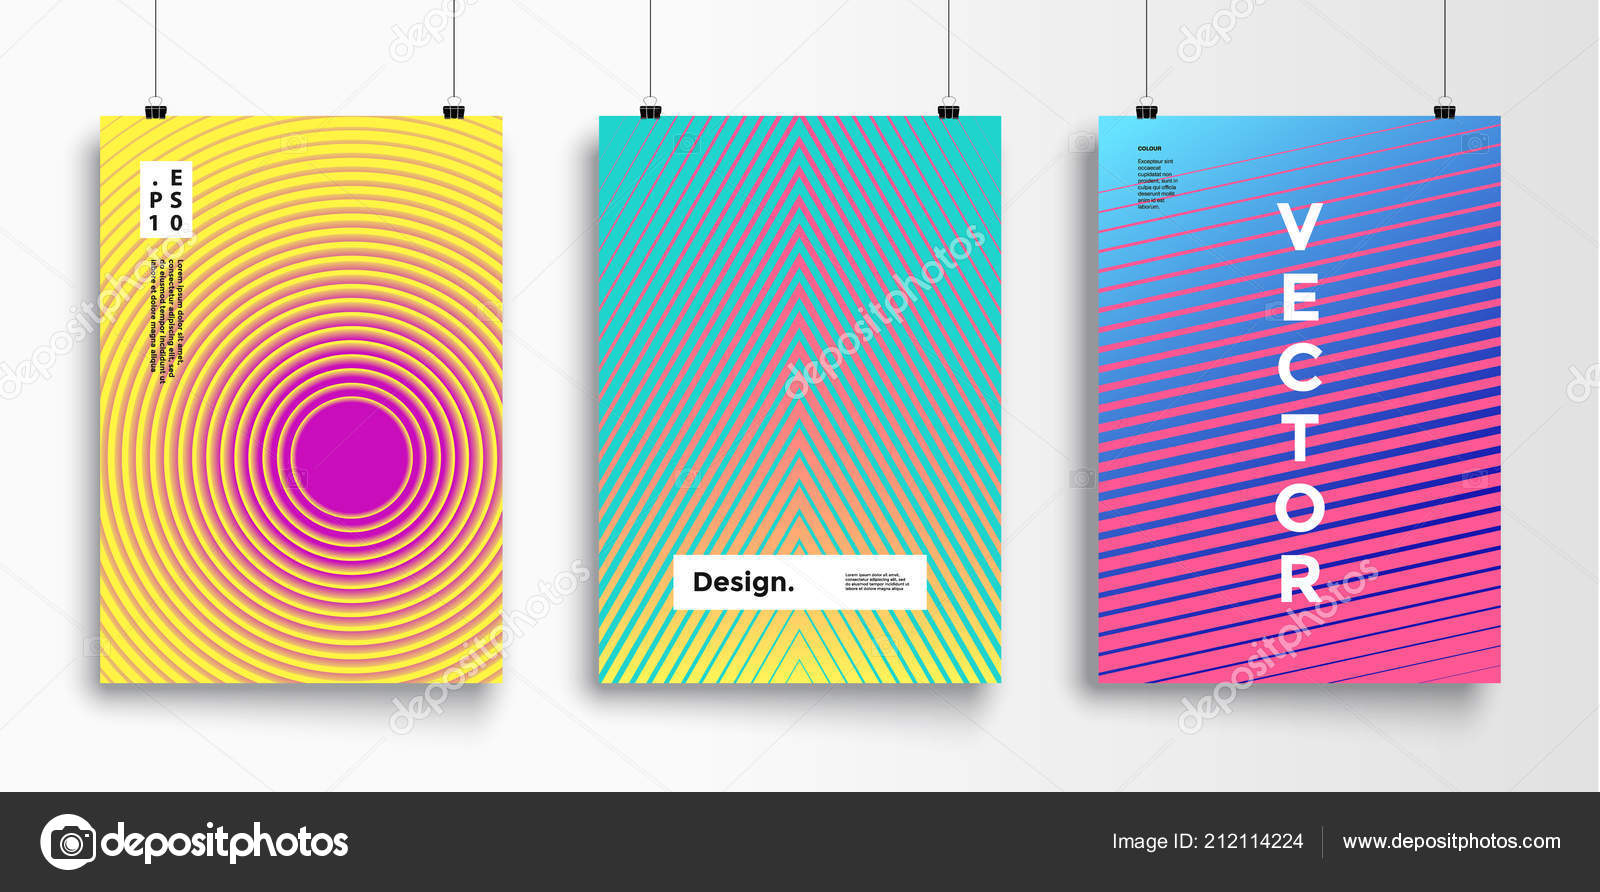 poster flat geometric pattern cool colorful backgrounds applicable